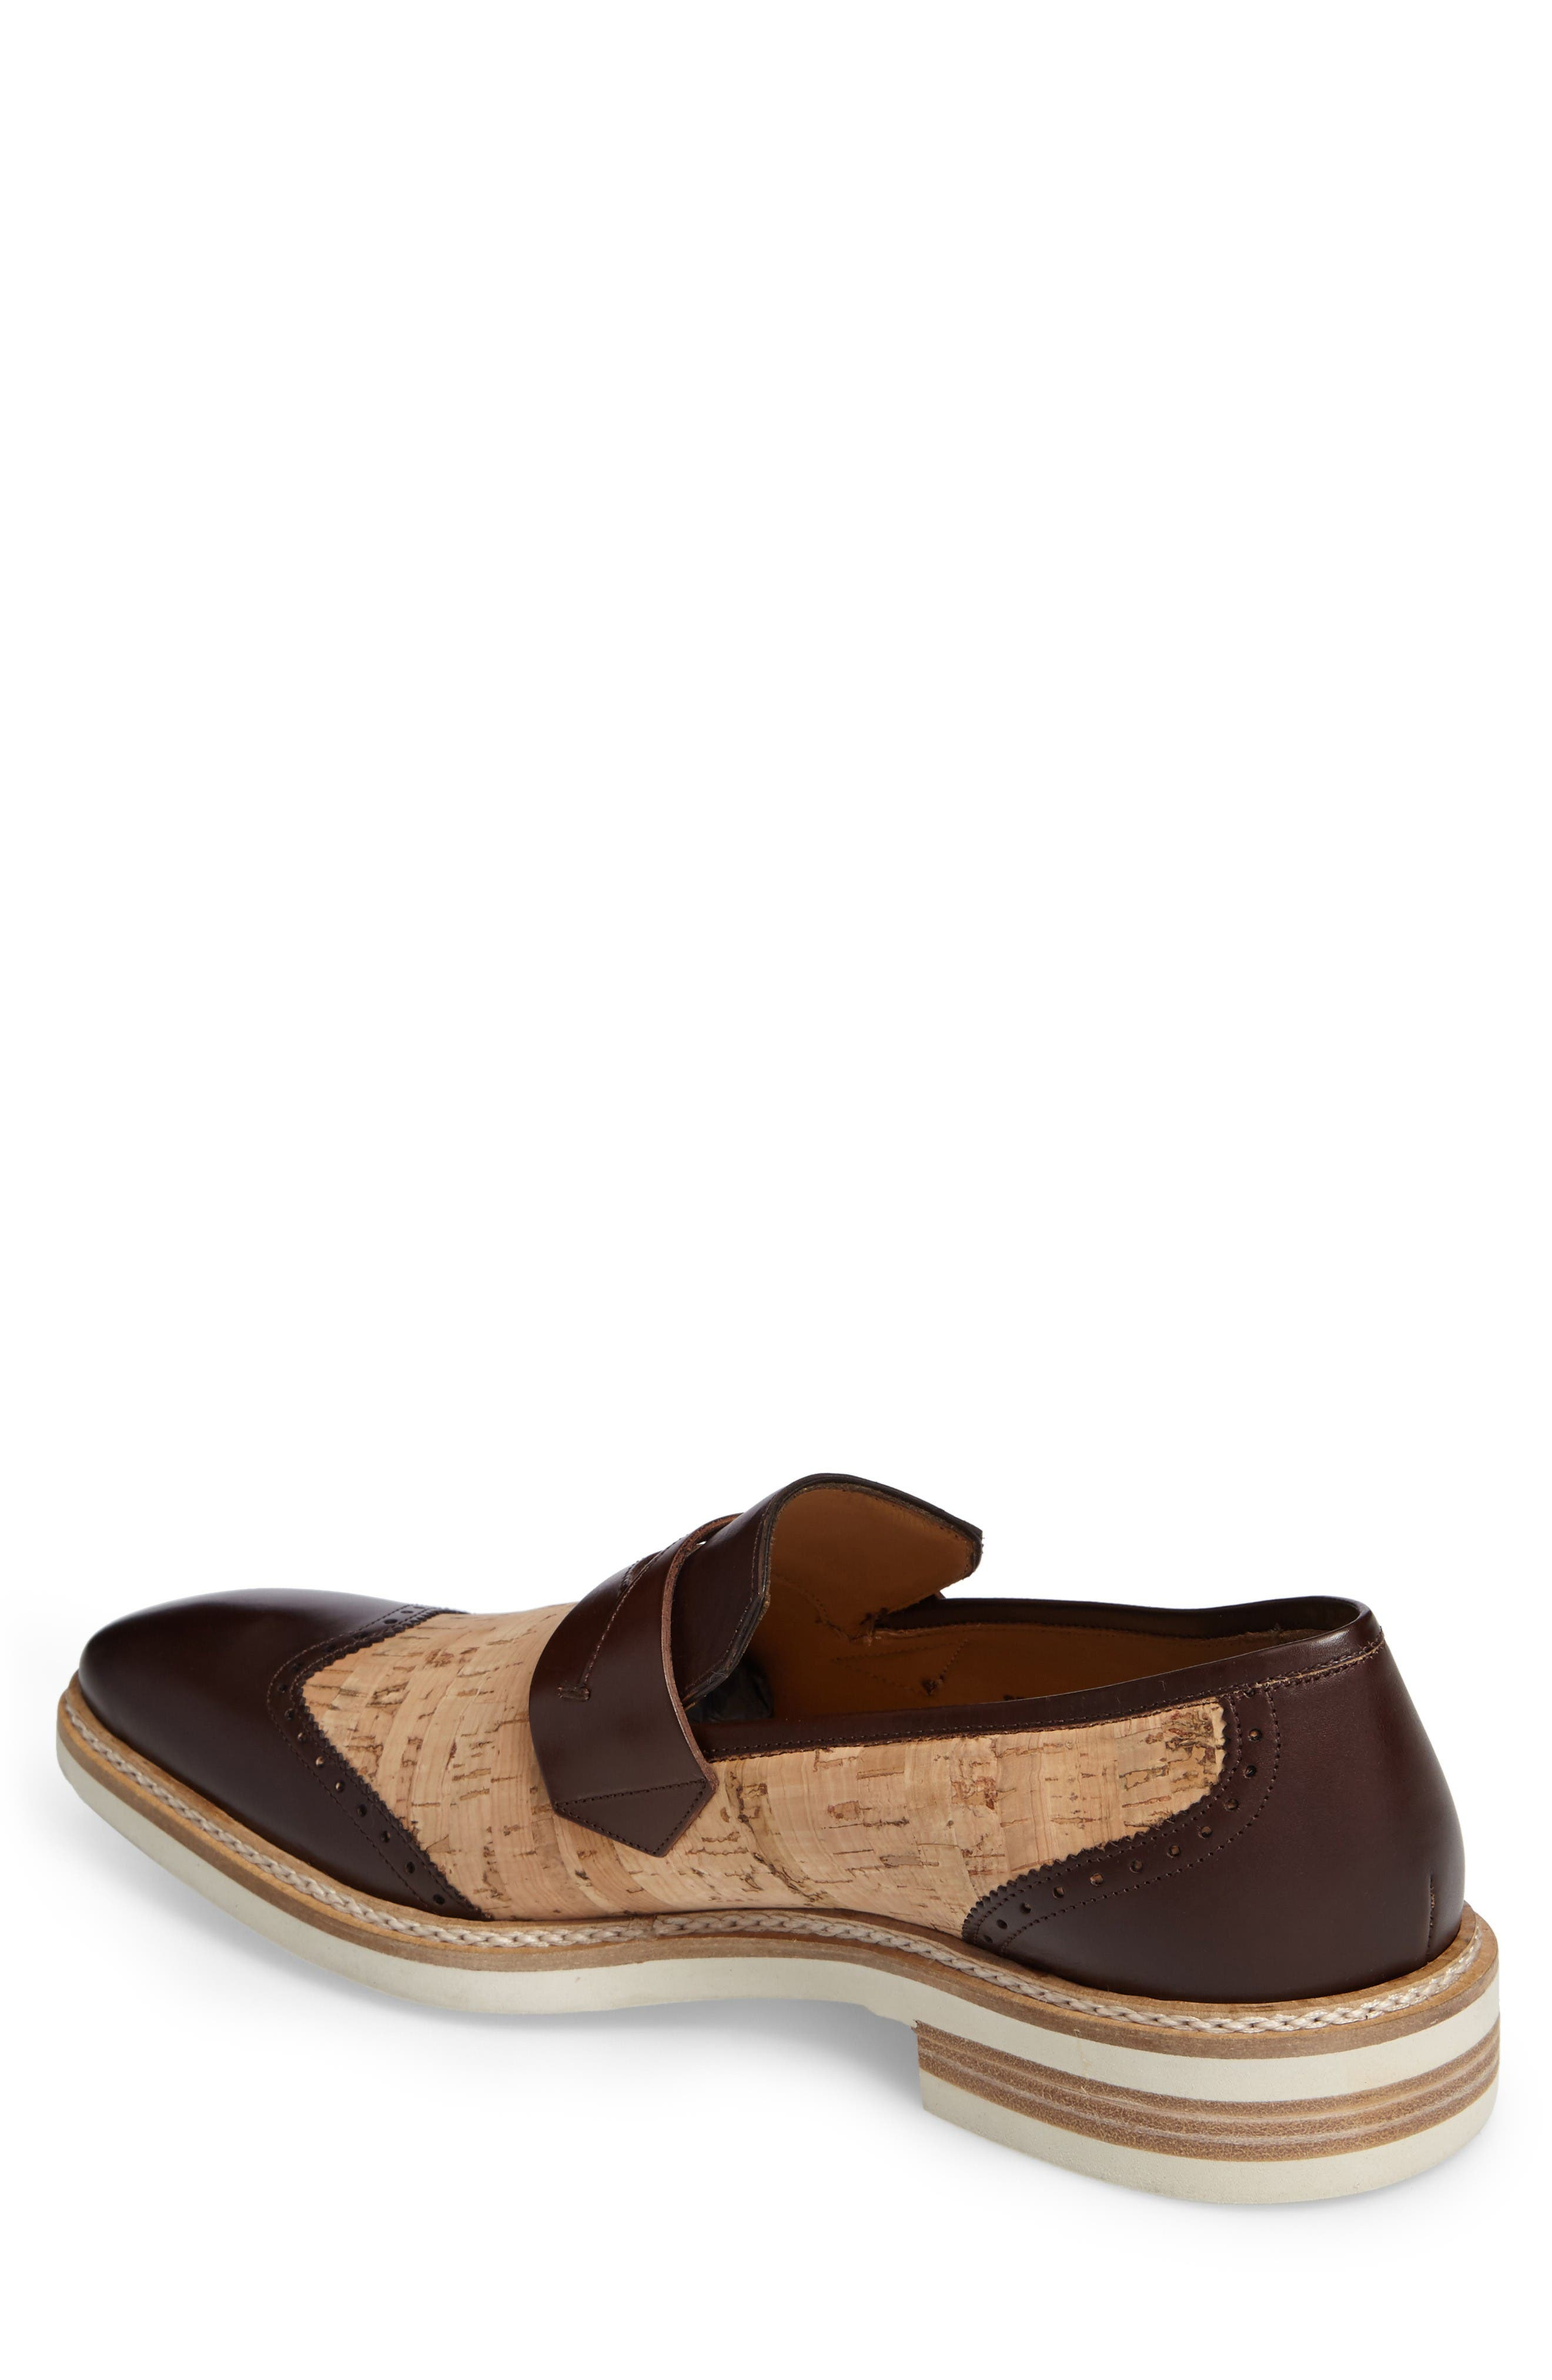 Alternate Image 2  - Mezlan Redi Venetian Loafer (Men)